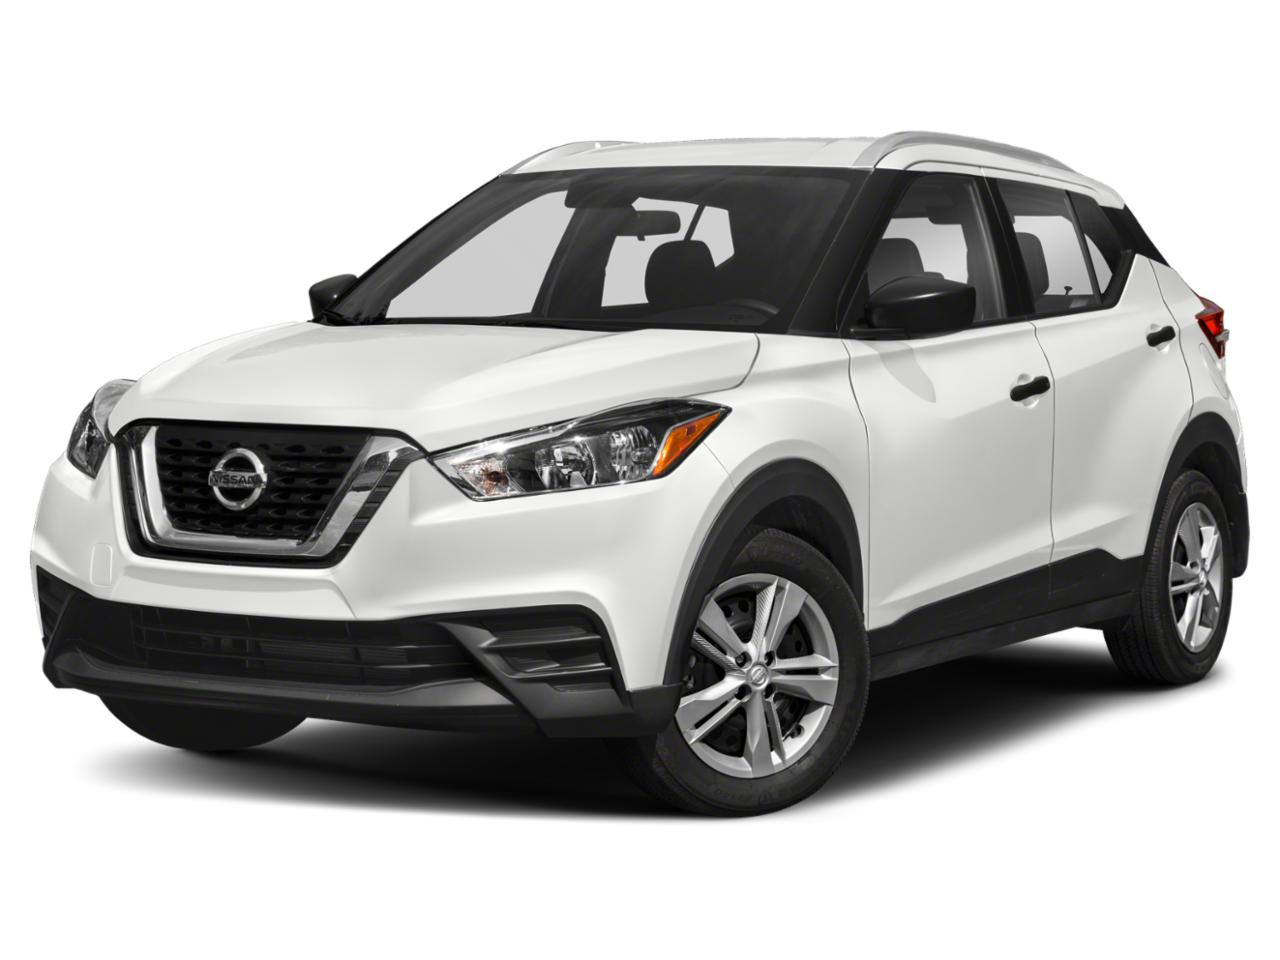 2019 Nissan Kicks Vehicle Photo in Nashua, NH 03060